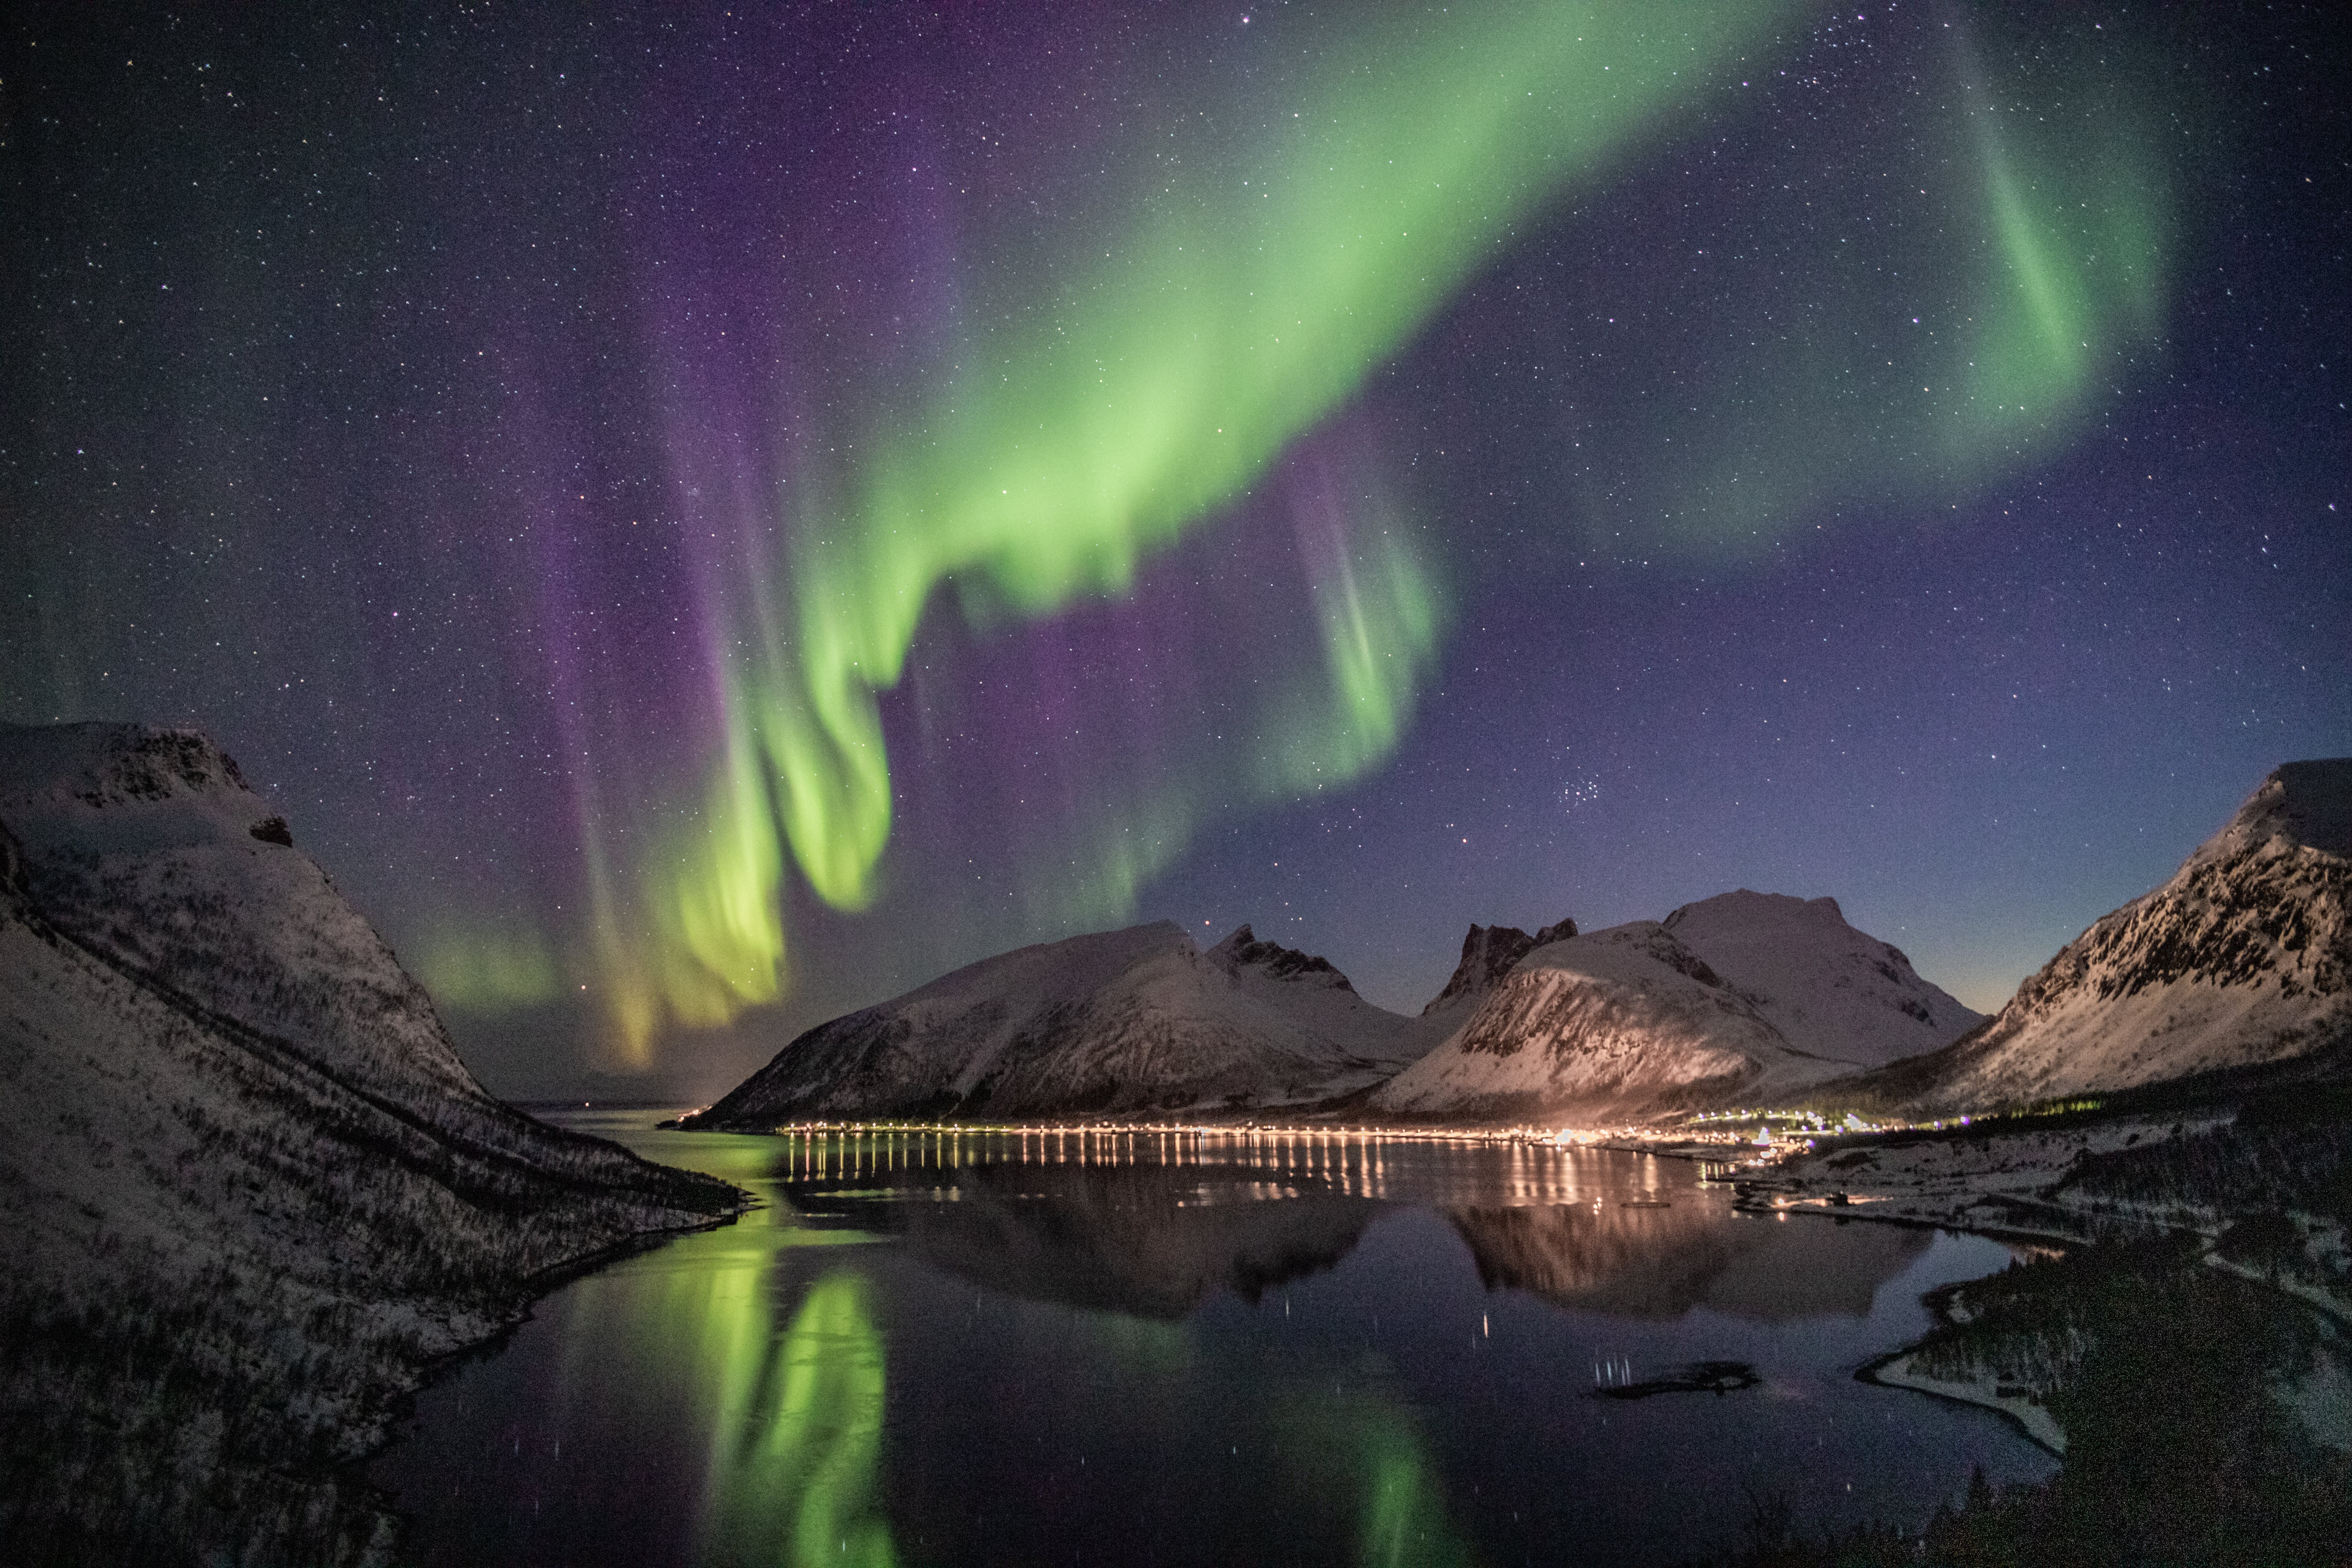 Mountain Beside Body of Water With Aurora Borealis